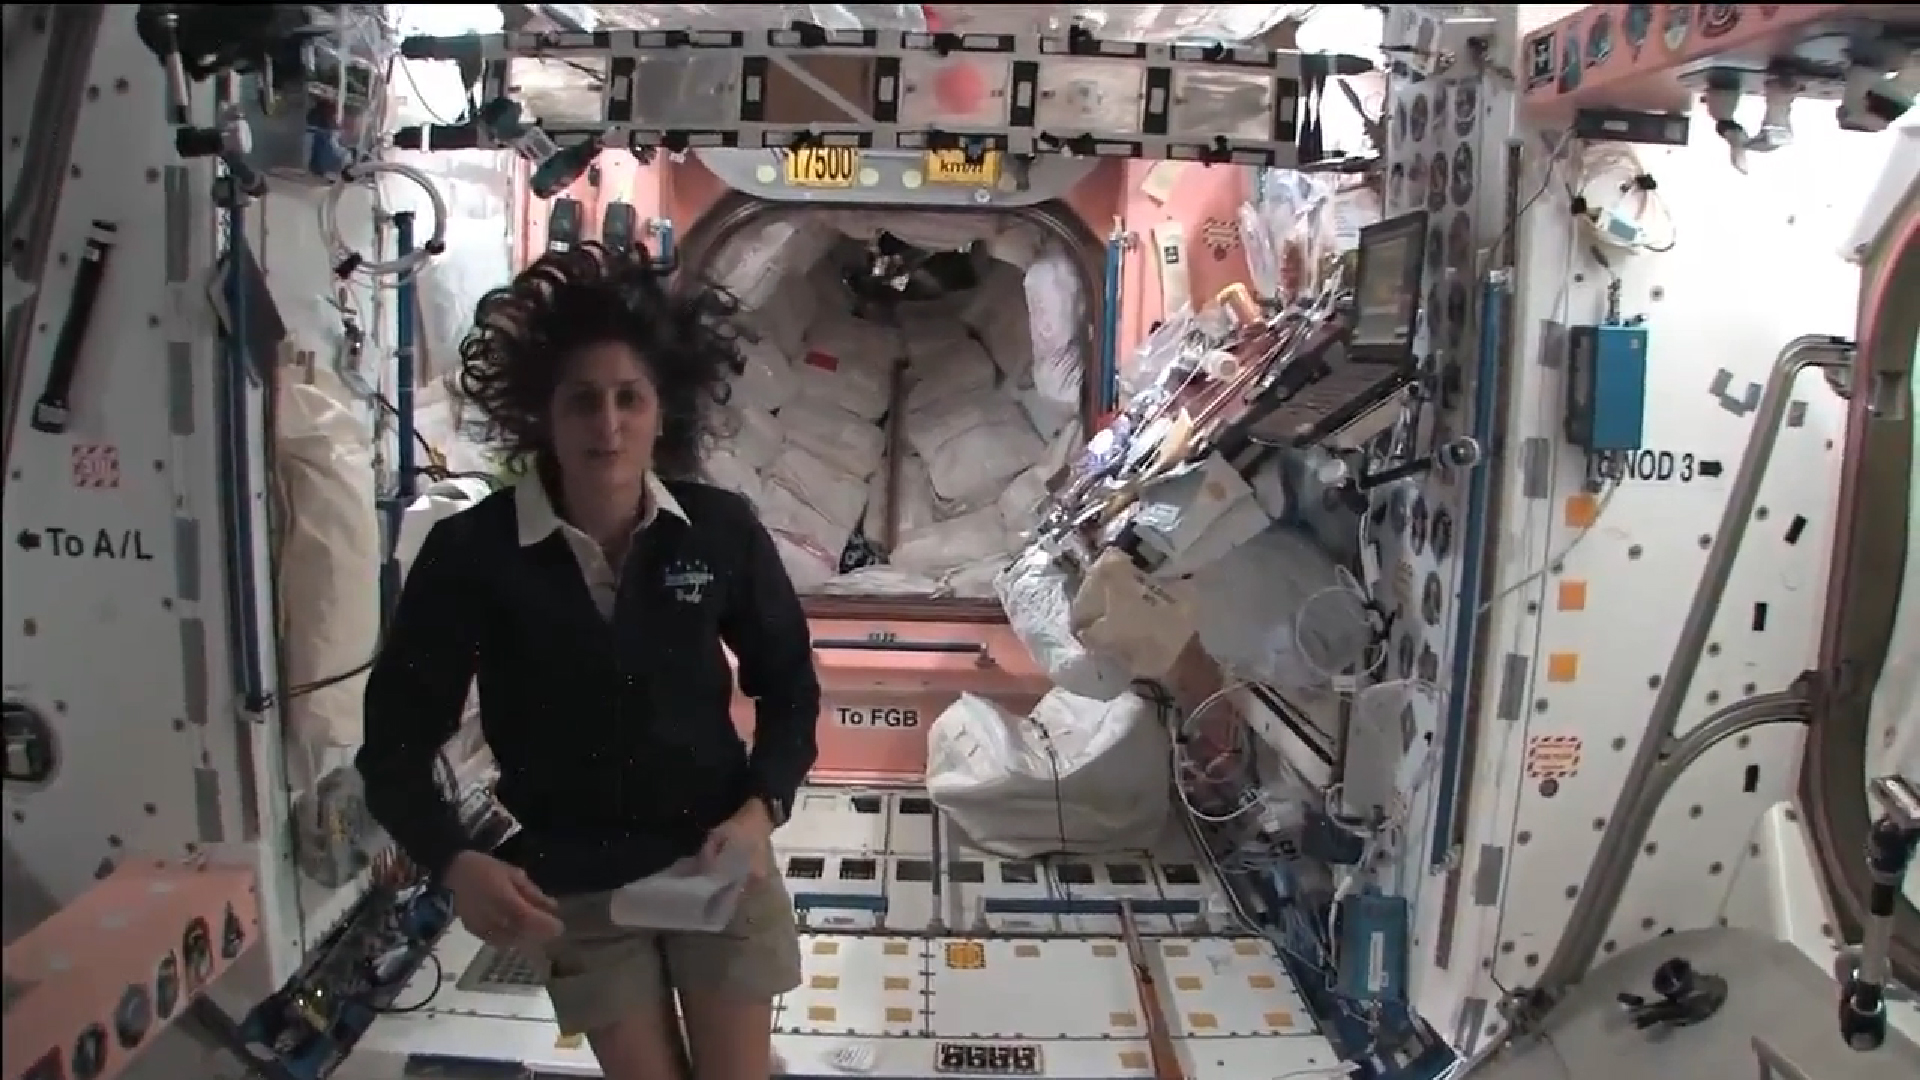 sunita williams in space station-#24